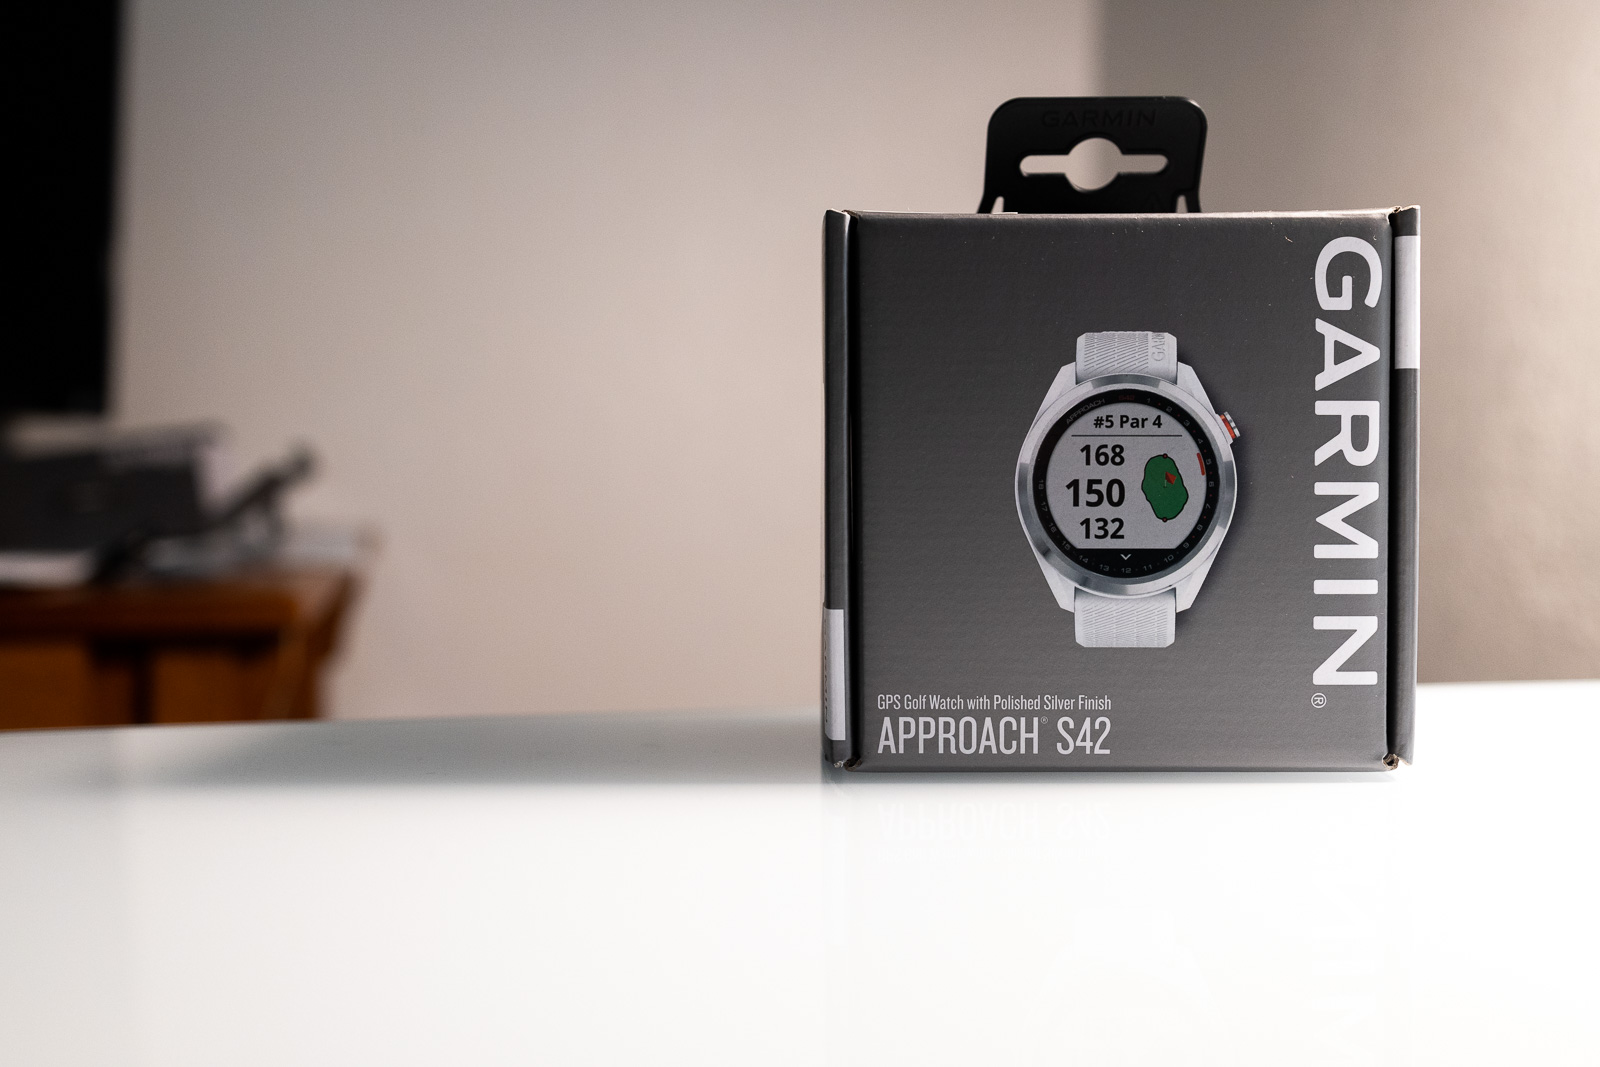 The packaging of the Garmin Approach S42.